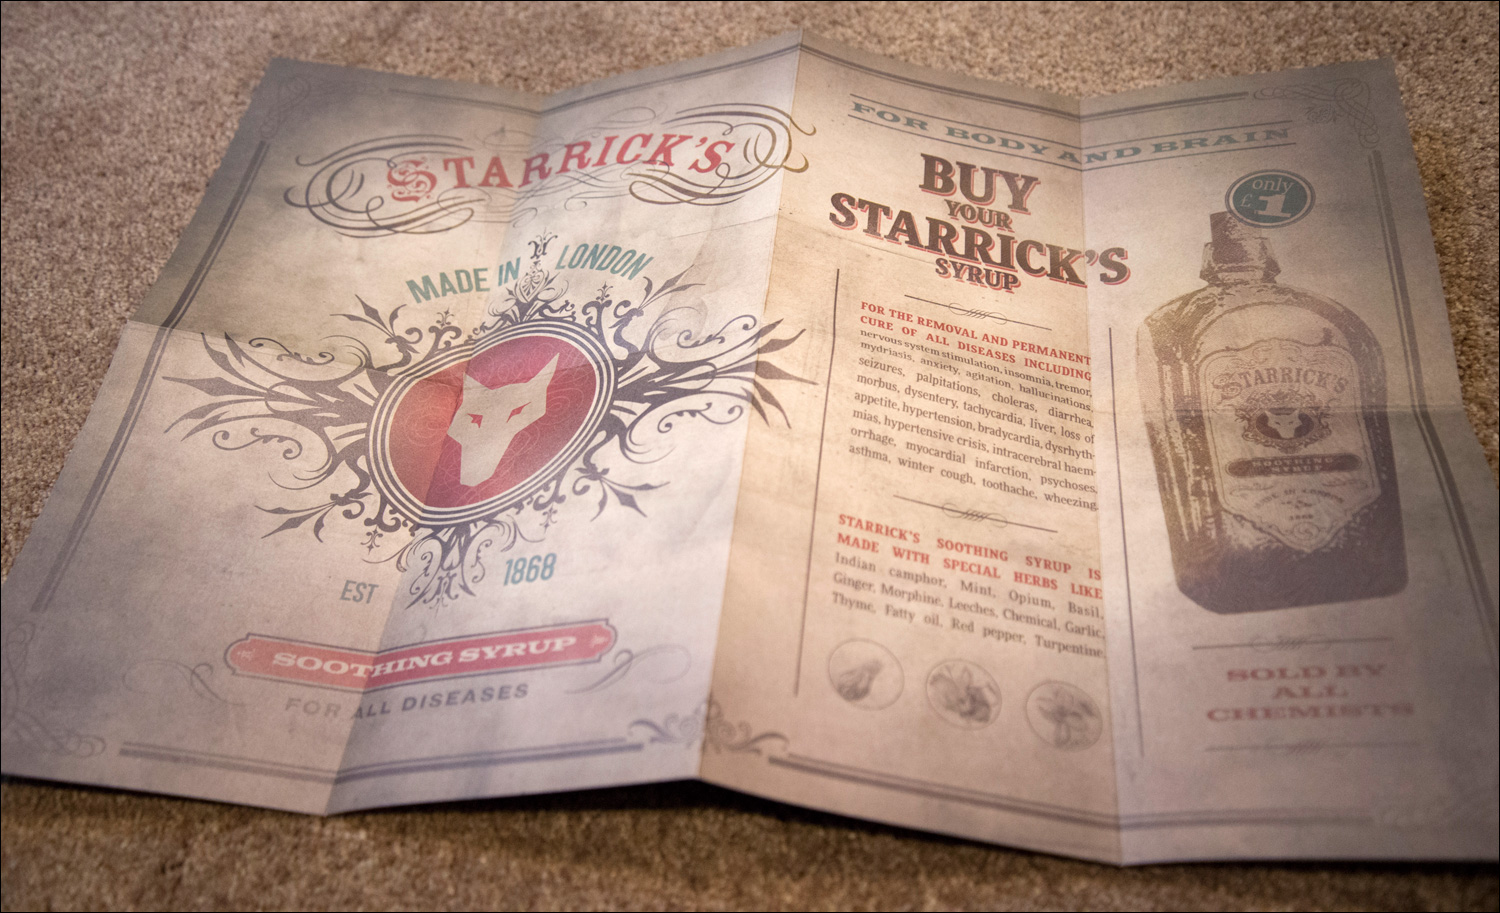 Assassins-Creed-Syndicate-Rooks-Edition-Map-of-London-Starricks-Syrup